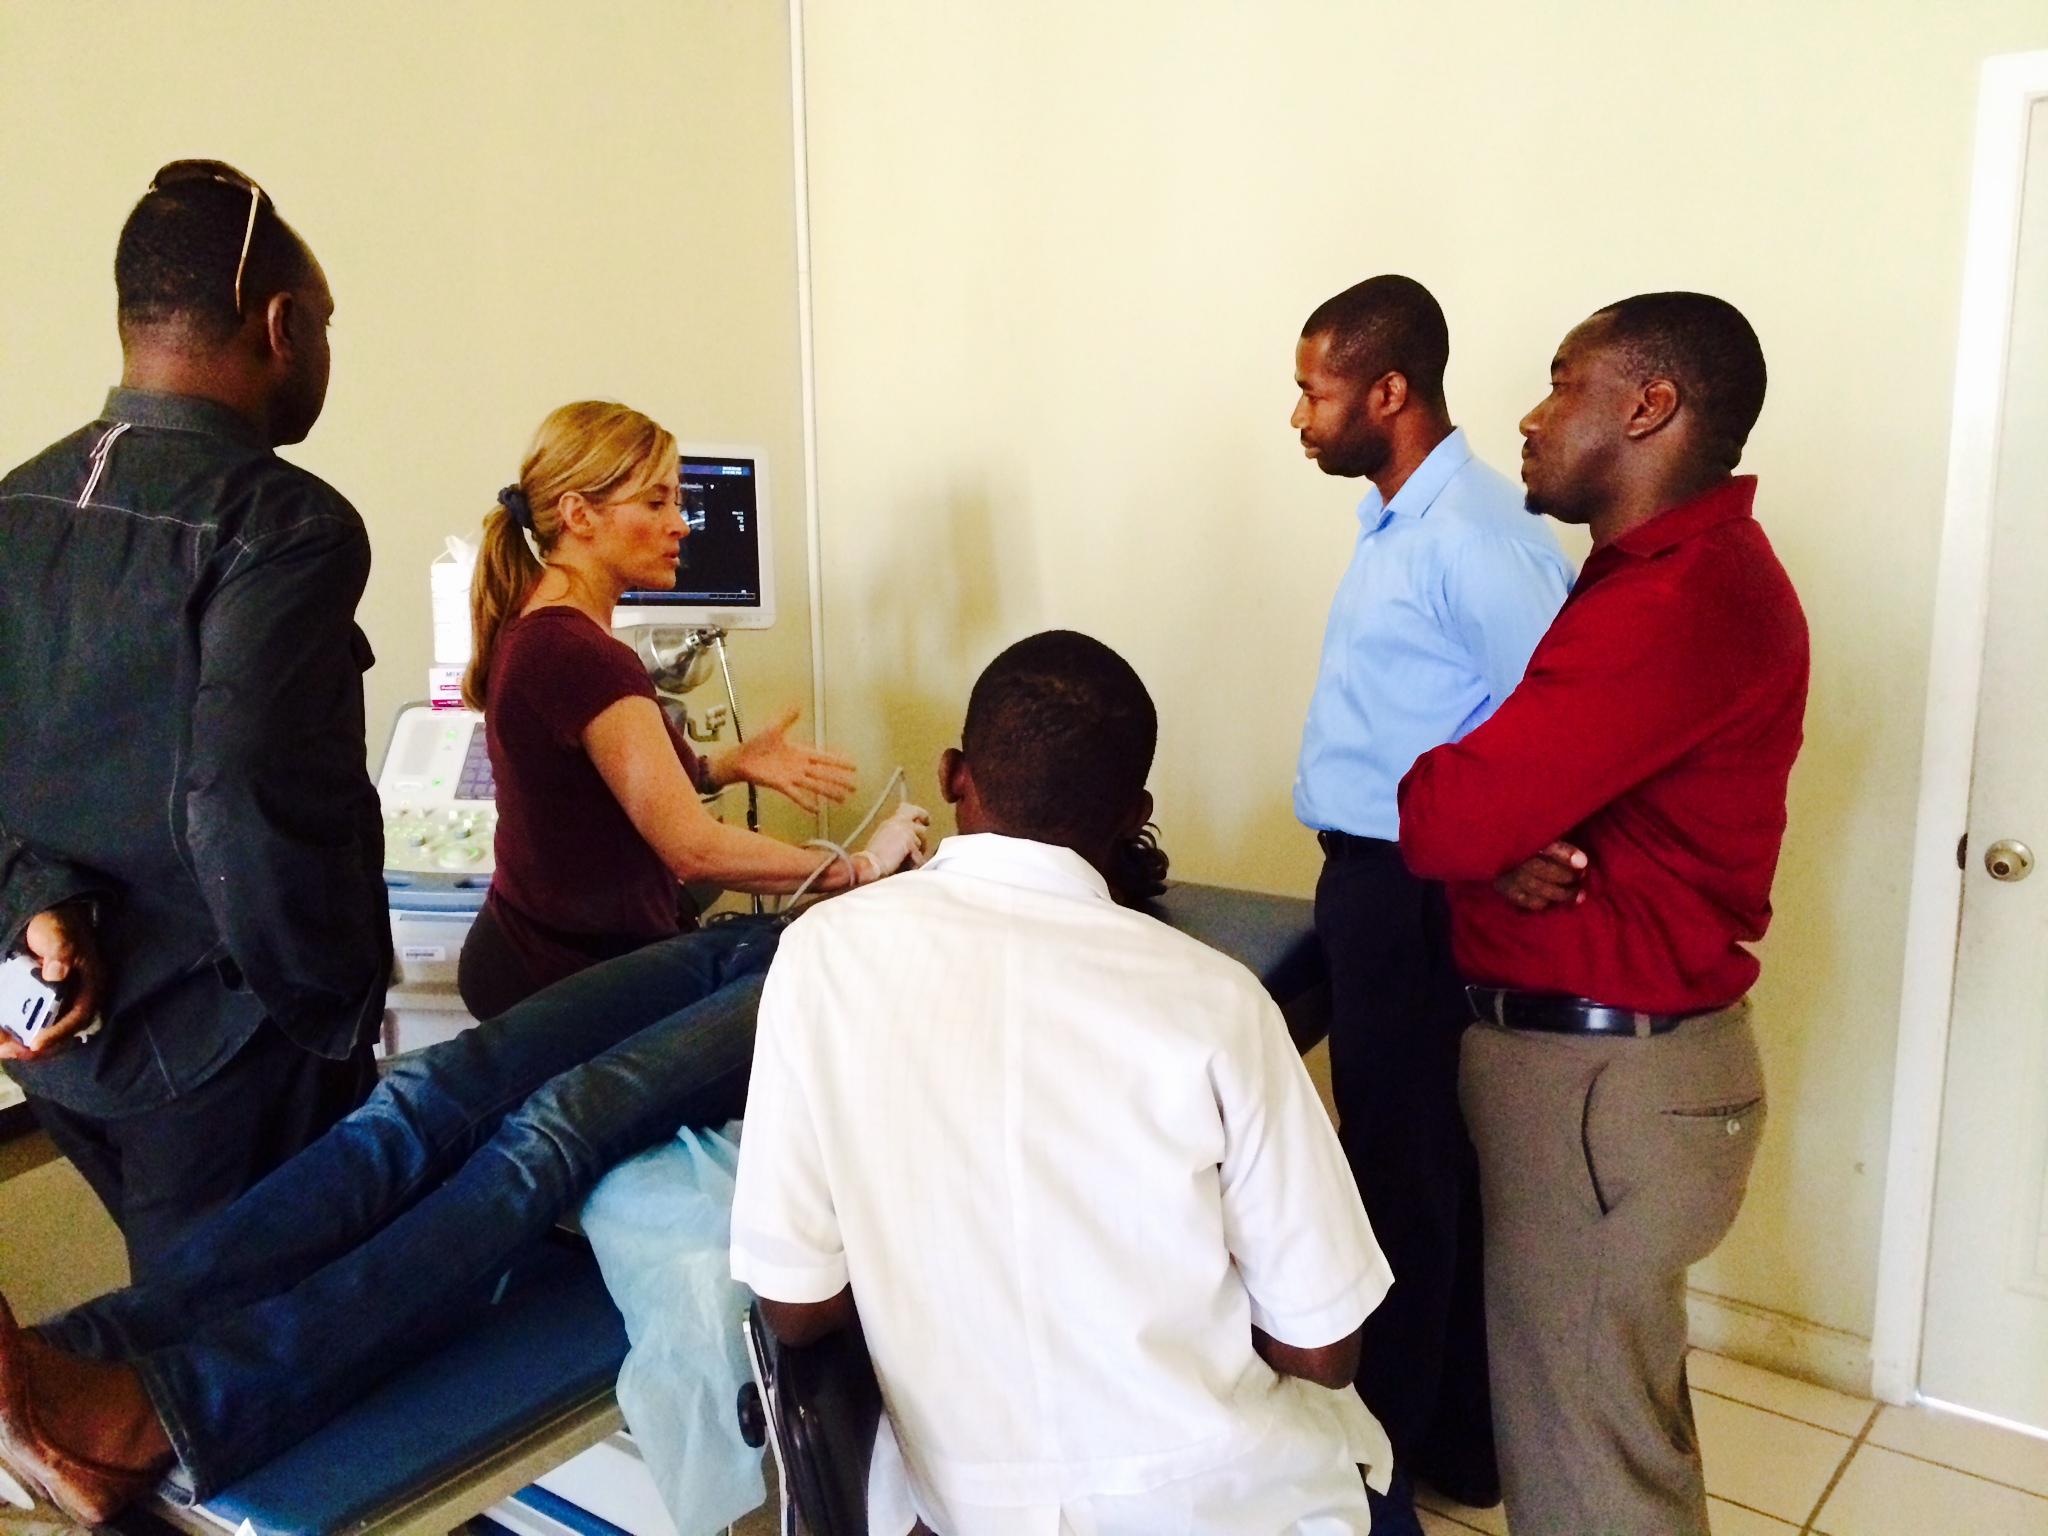 Lori Strachowski, MD, volunteer from UCSF Medical Center, teaching Haitian OB/GYN physicians how to perform breast ultrasound